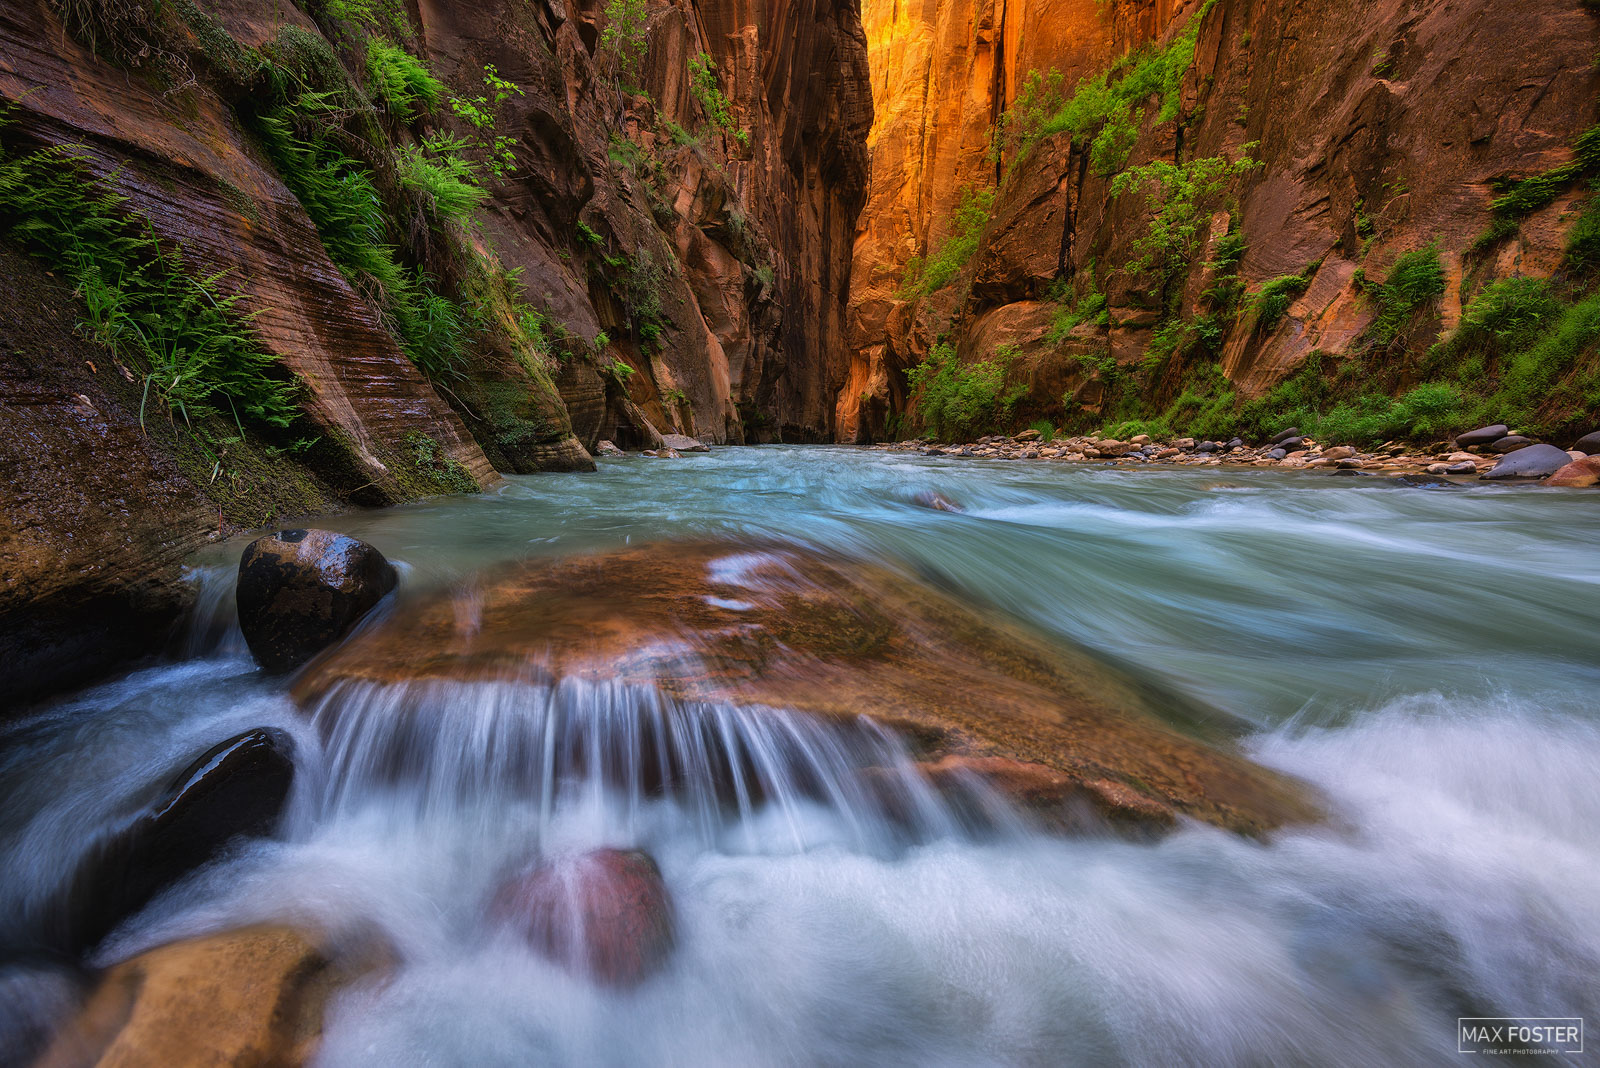 Zion National Park, Utah, A Place of Wonder, Colorado River, Virgin River, Slot Canyon, photo